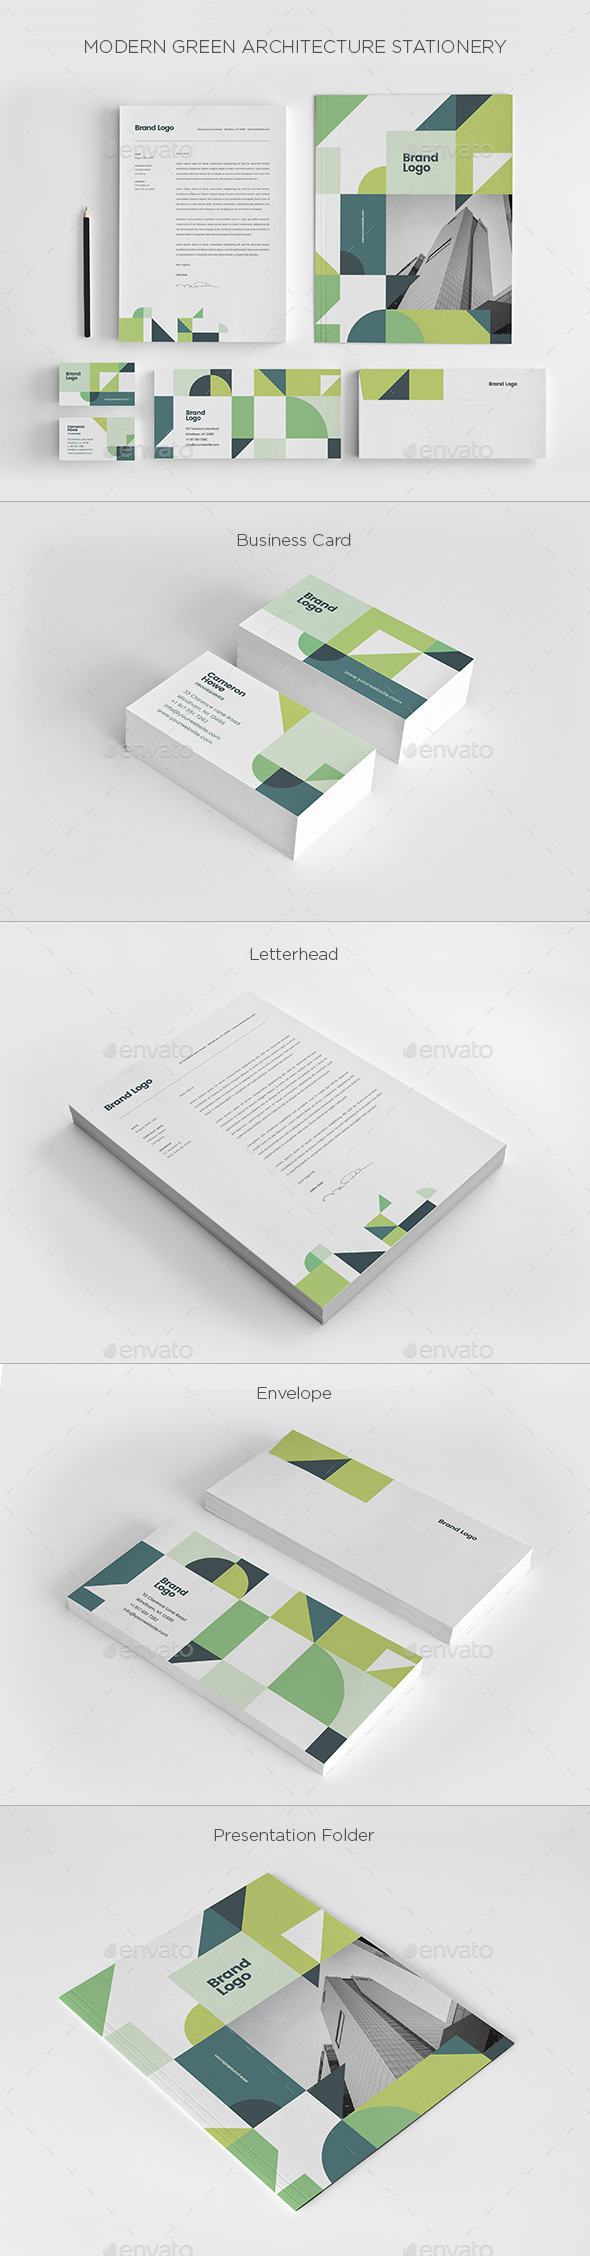 Modern Green Architecture Stationery - Stationery Print Templates